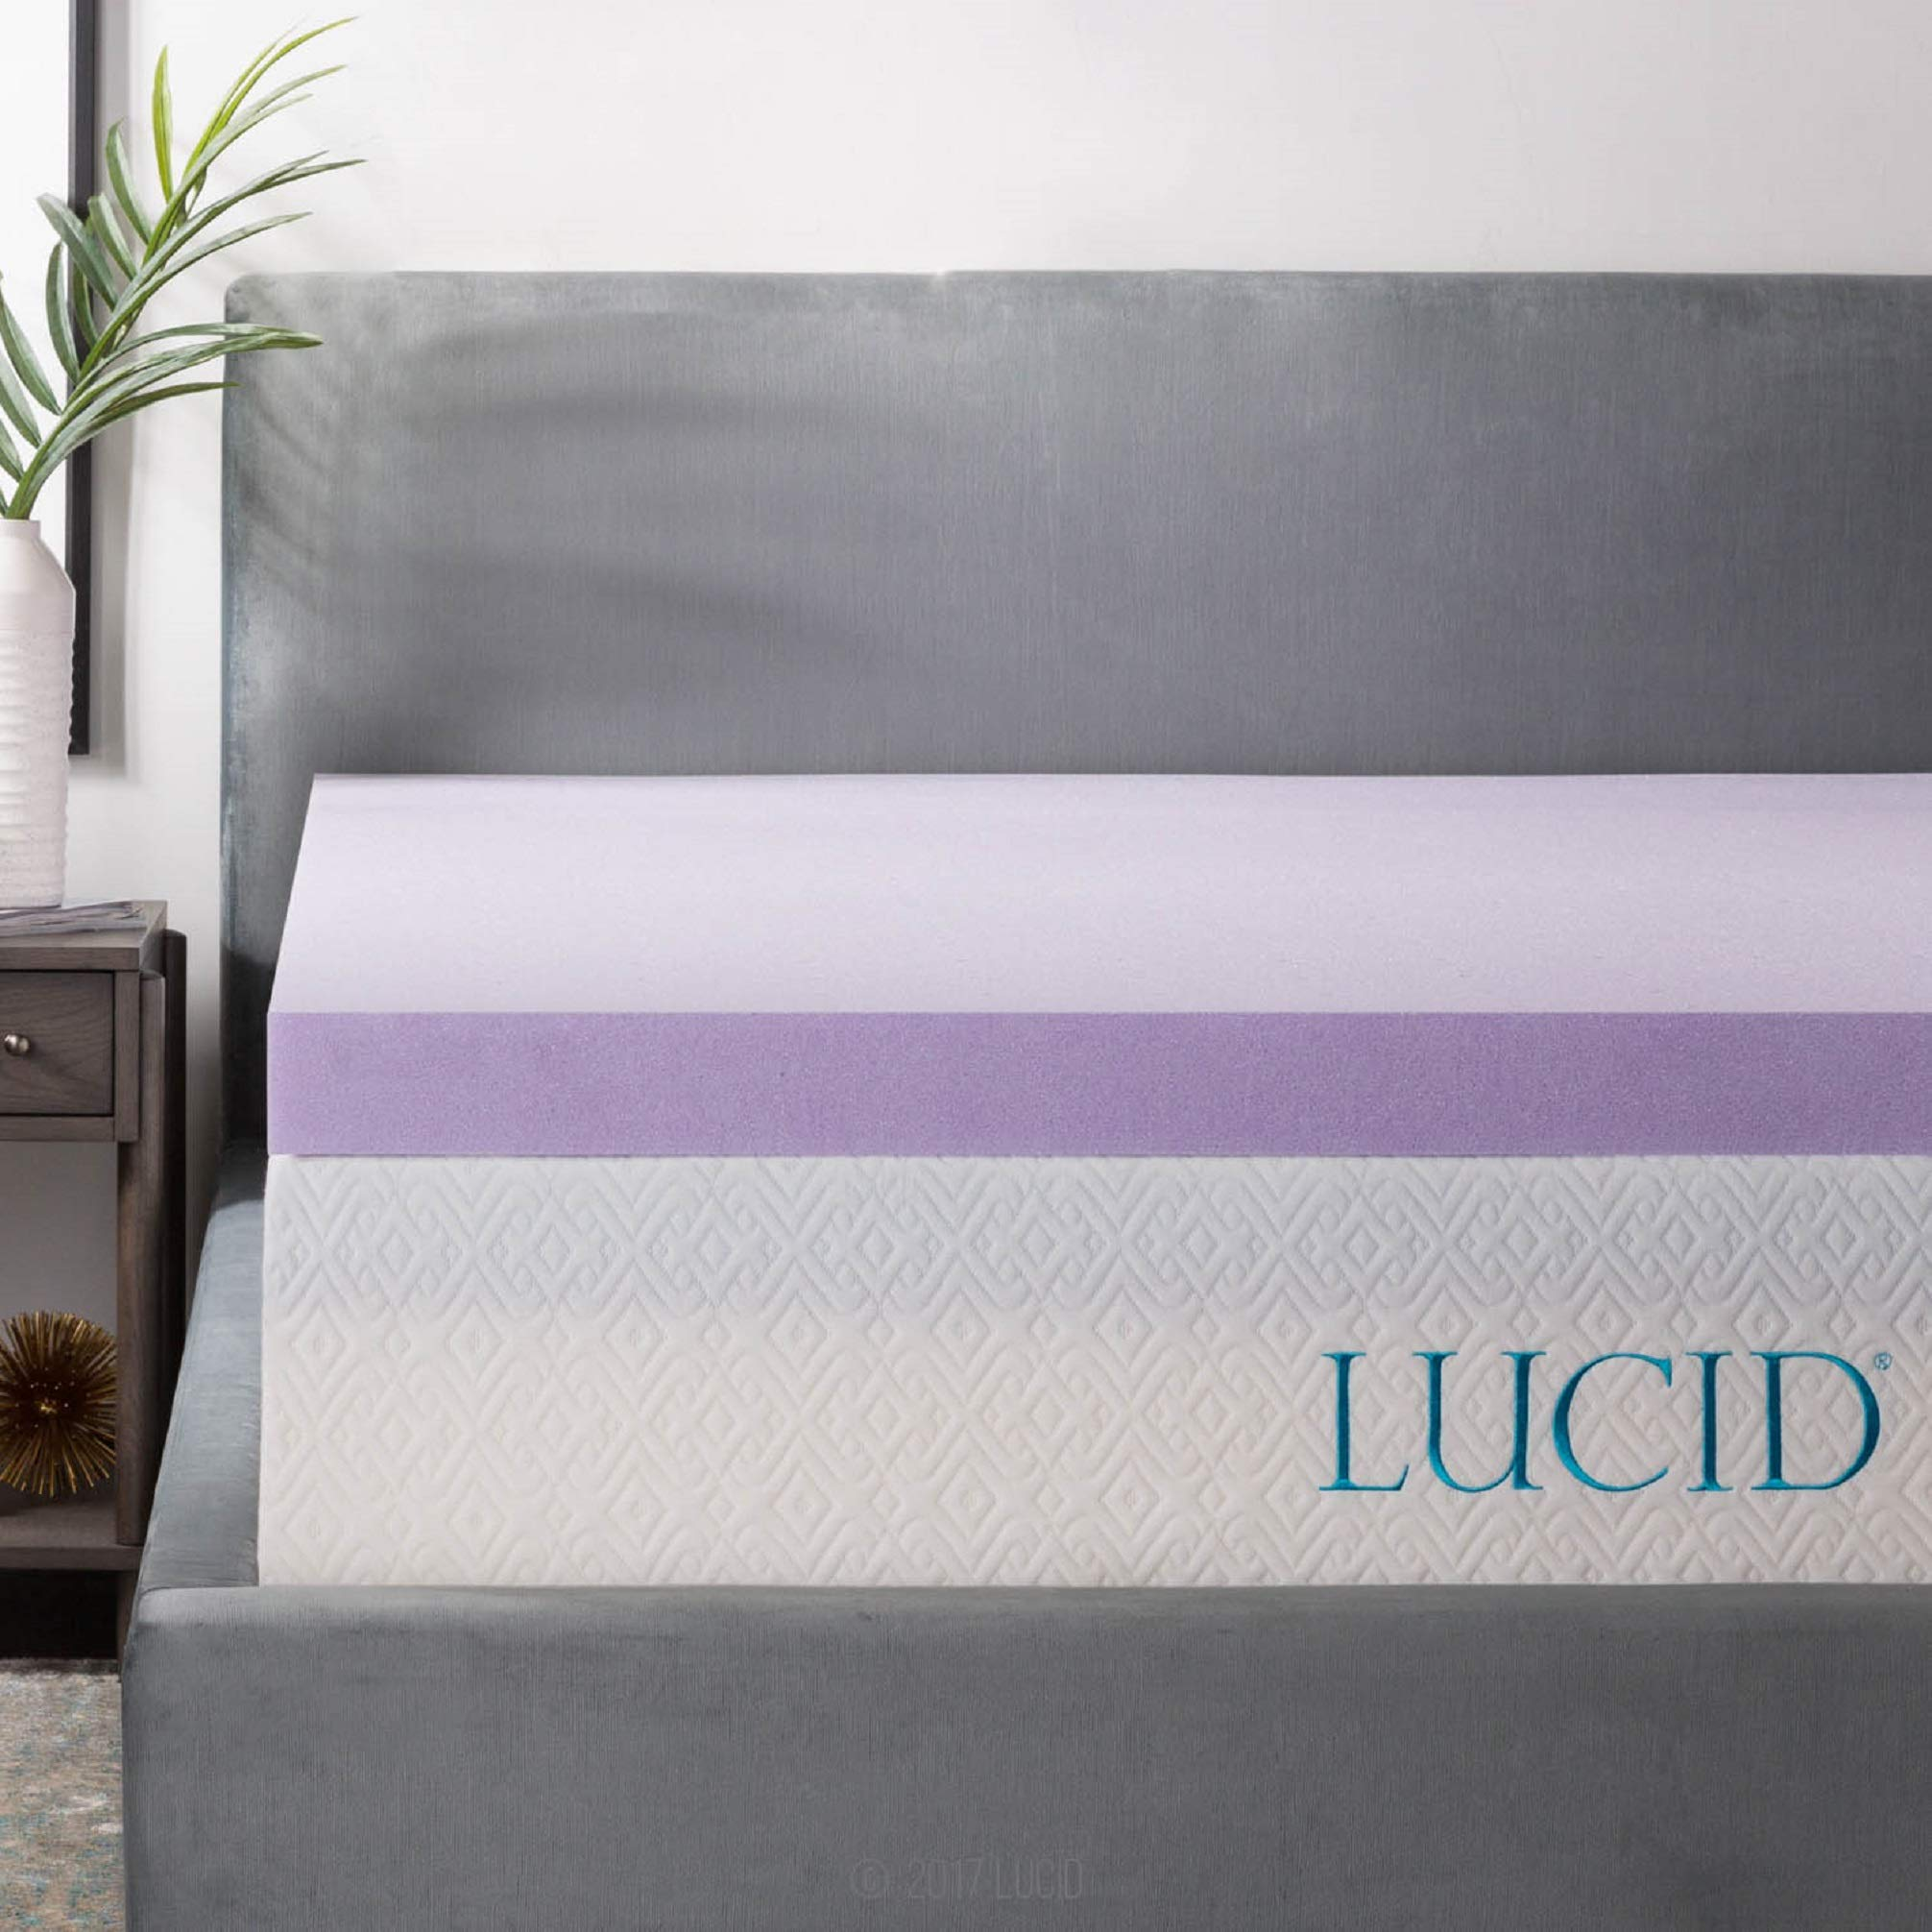 LUCID 3 Inch Lavender Infused Memory Foam Mattress Topper - Ventilated Design - Queen Size